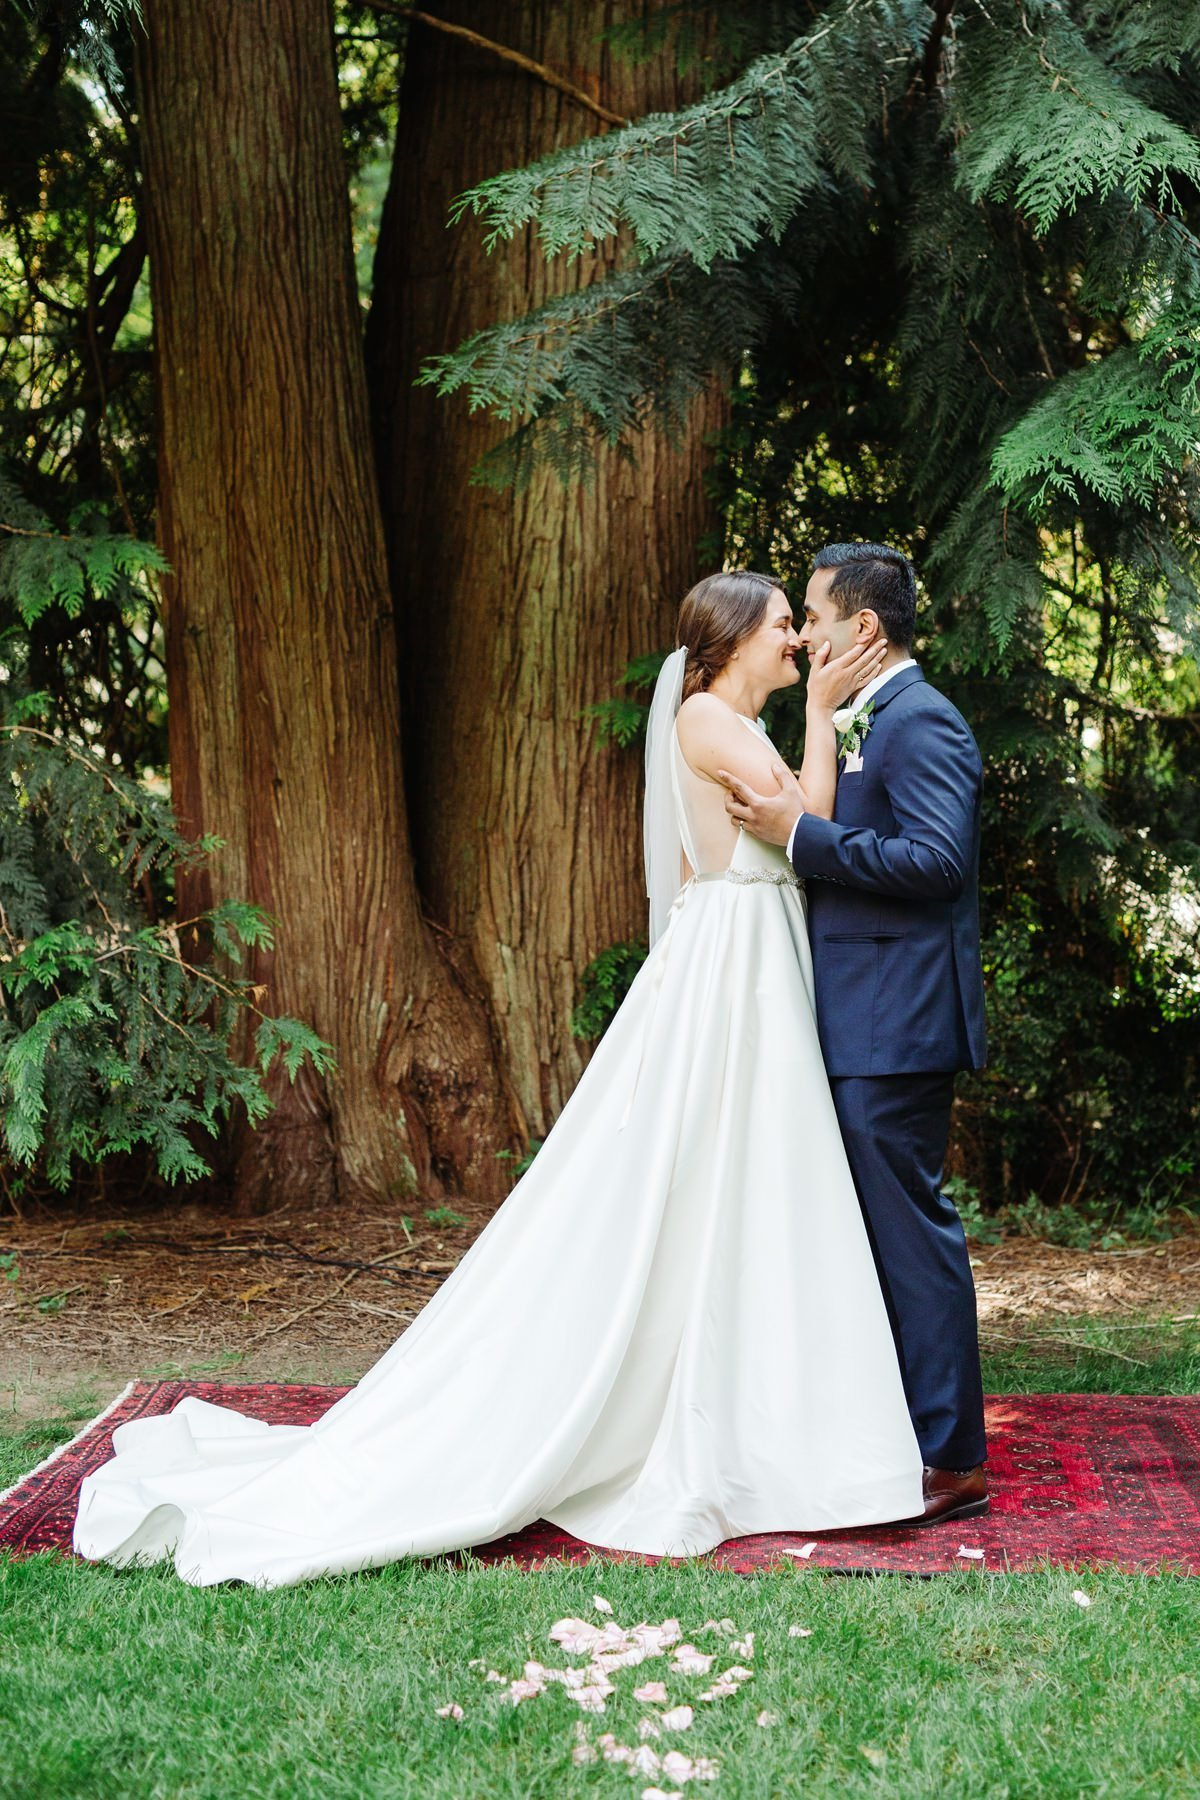 islandwood-bainbridge-island-wedding-photographer-seattle-cameron-zegers-0199